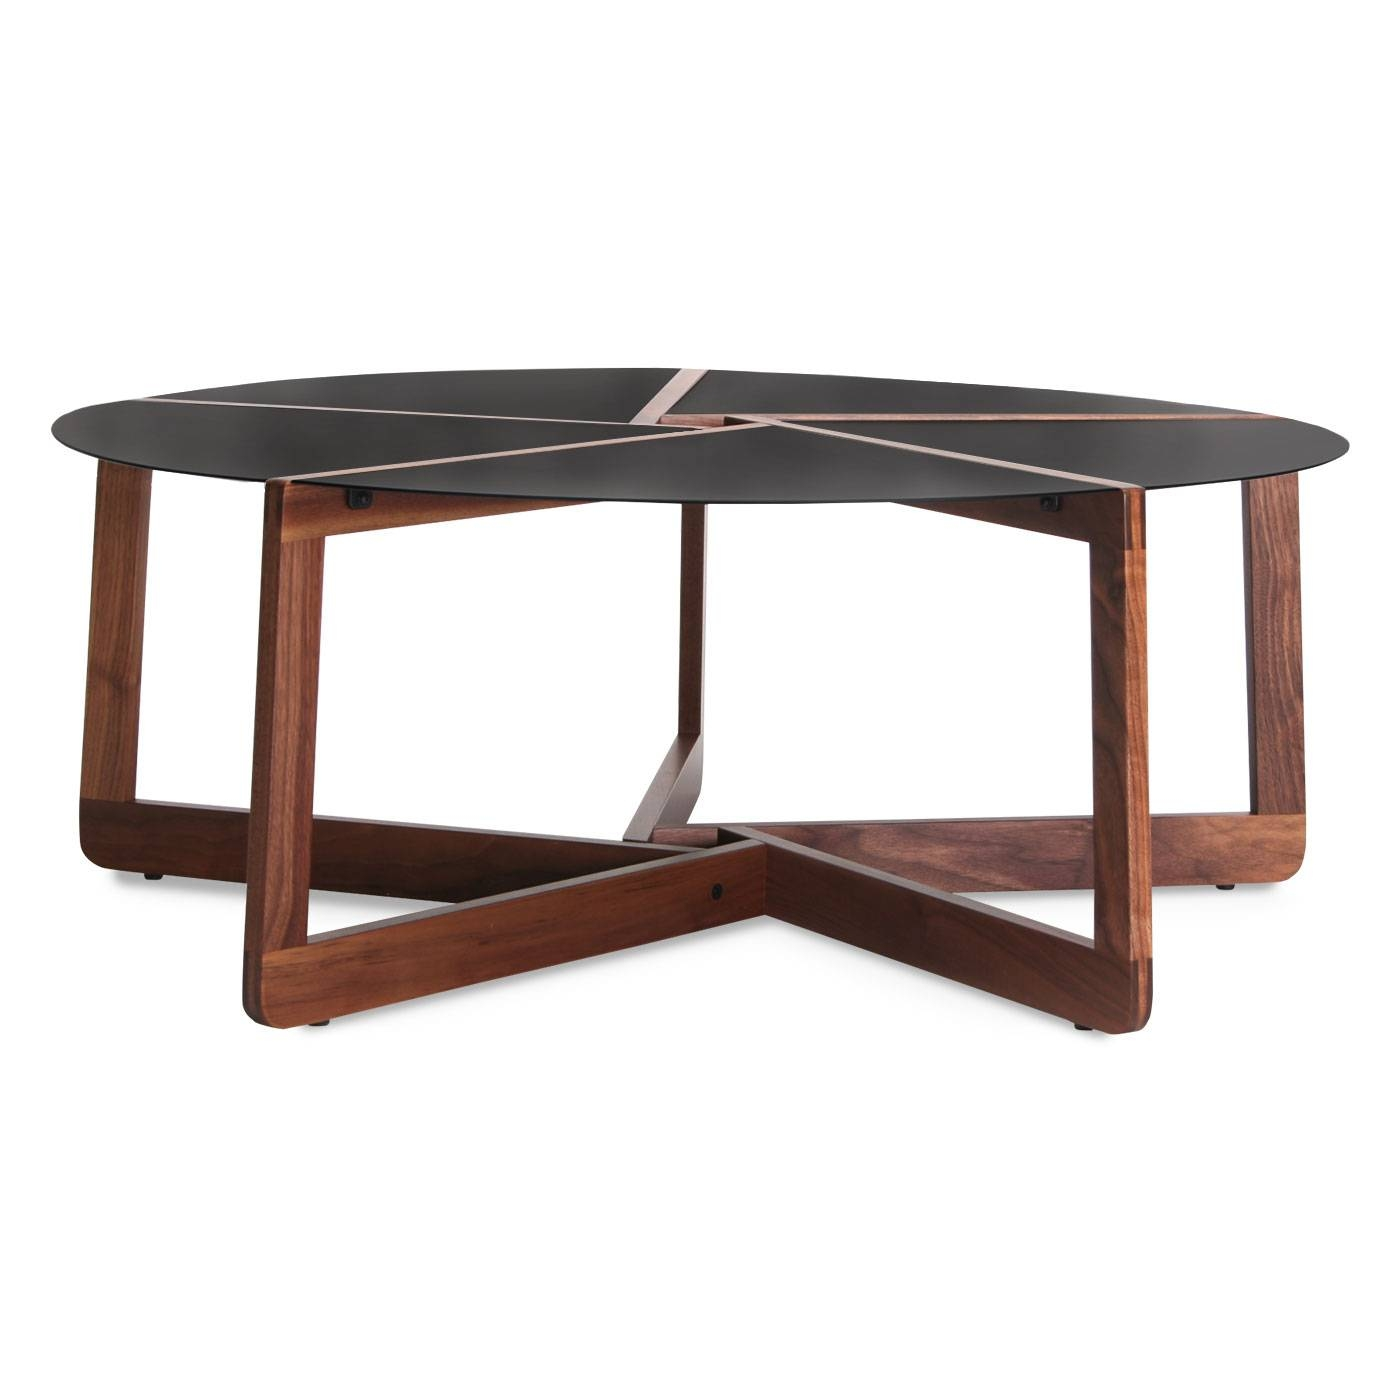 Pi Coffee Table - Round Wood & Metal Coffee Table | Blu Dot inside Wood Modern Coffee Tables (Image 27 of 30)